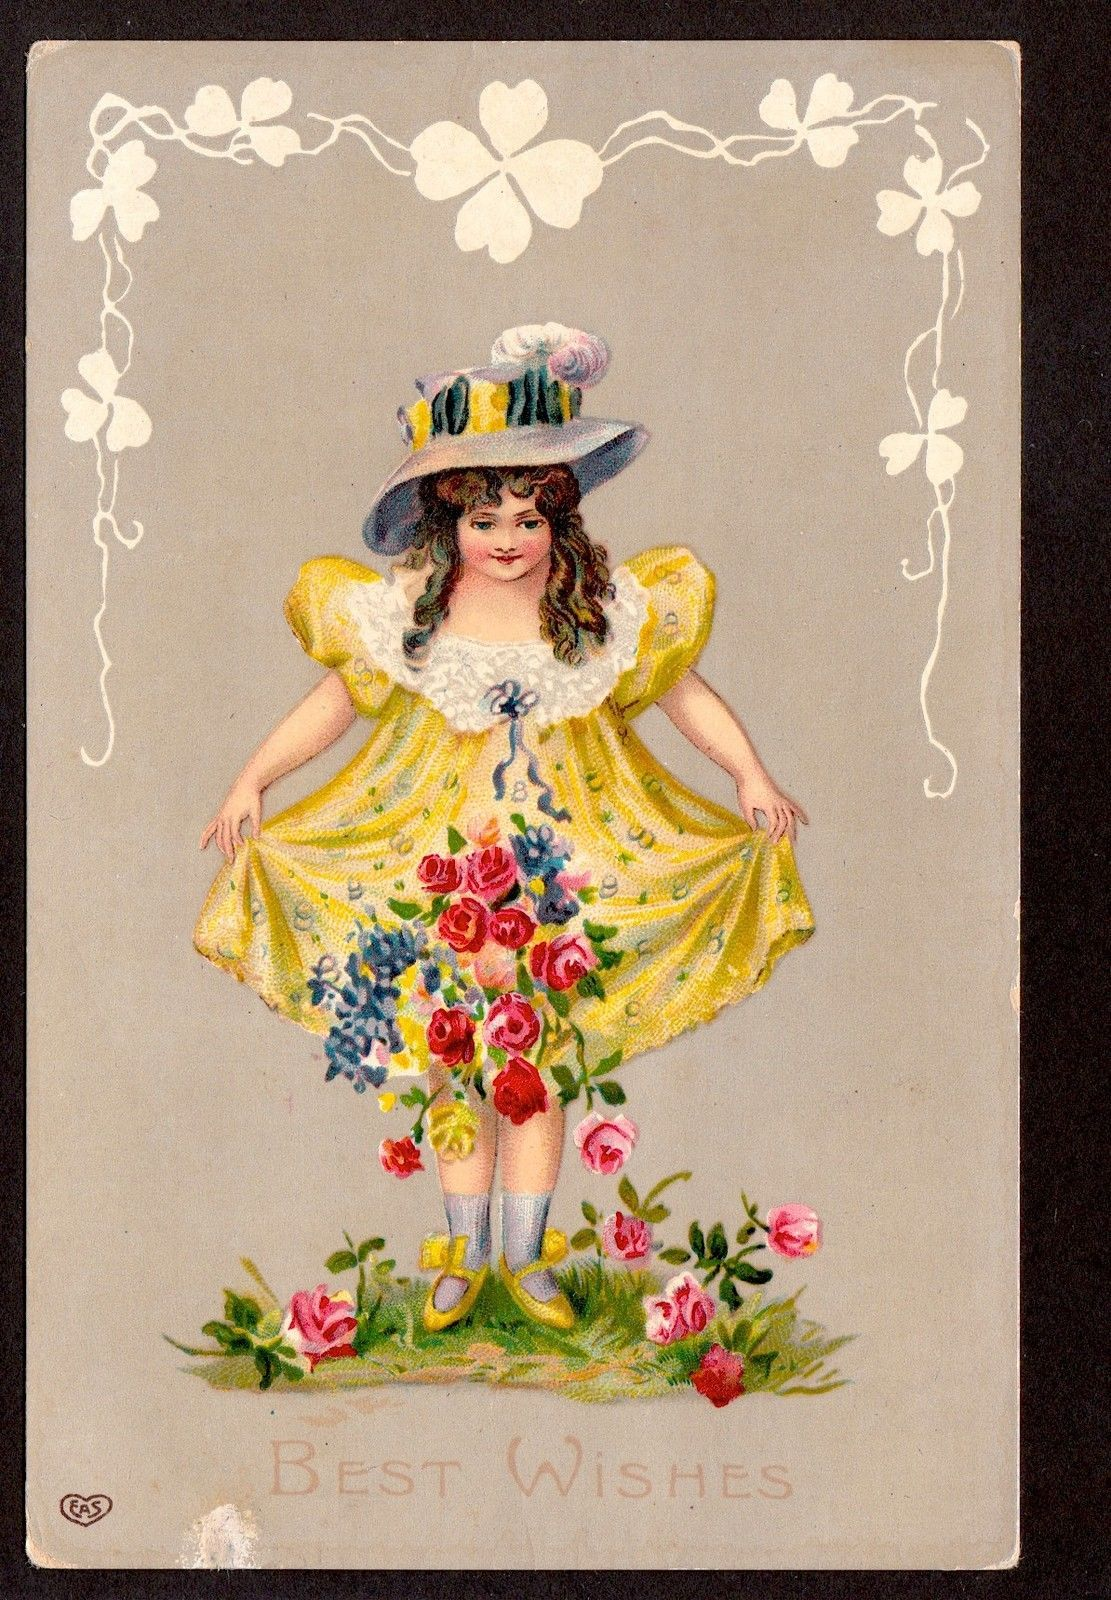 C1910 EAS Girl in Yellow Picking Flowers Best Wishes Greetings Postcard | eBay